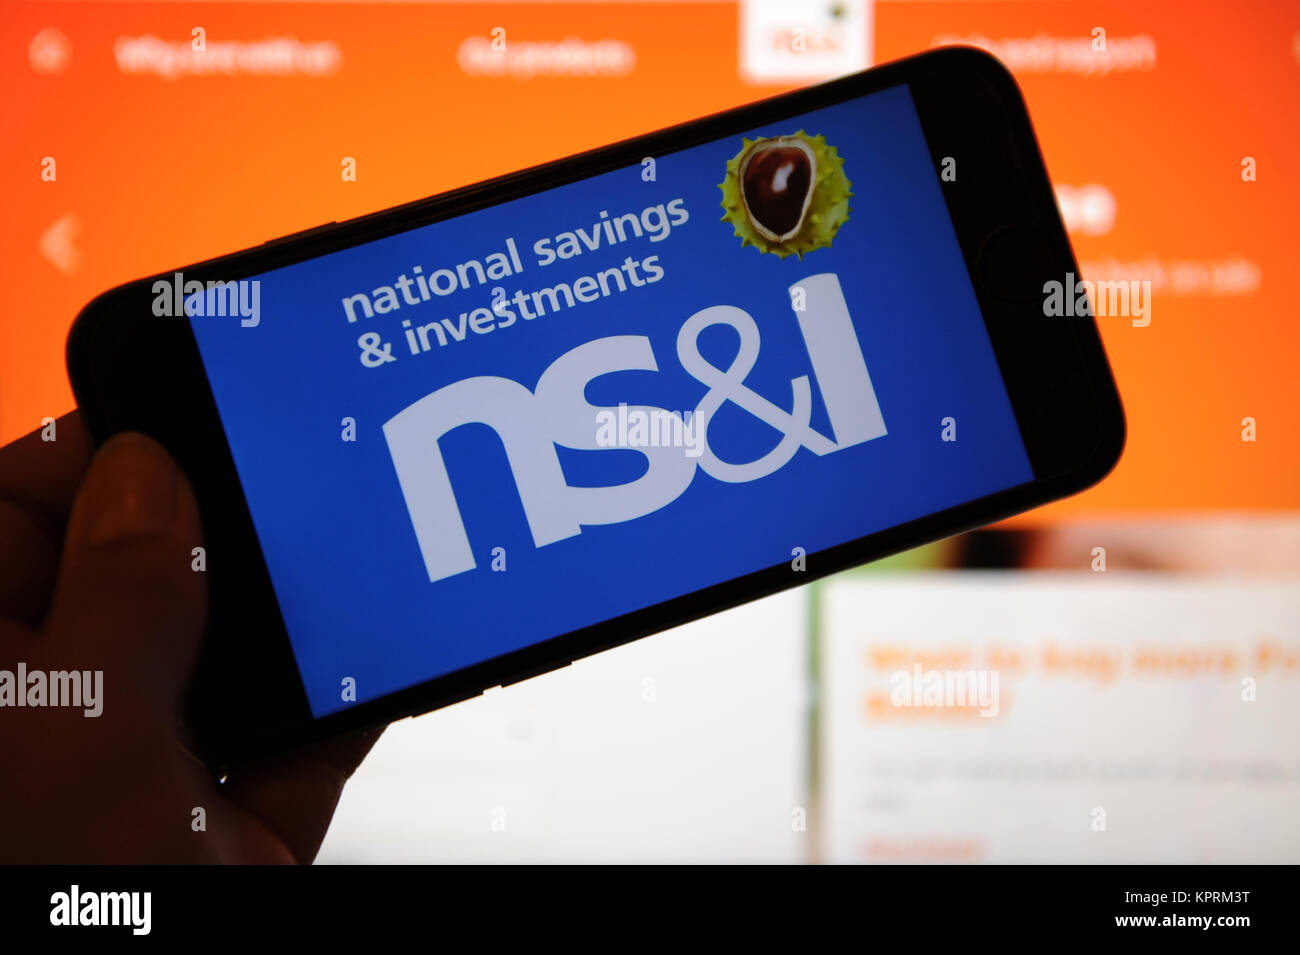 national savings National savings and investments (ns&i) offer a wide range of savings and investment products that are backed by hm treasury some are not always available, or are limited offers – keep an.